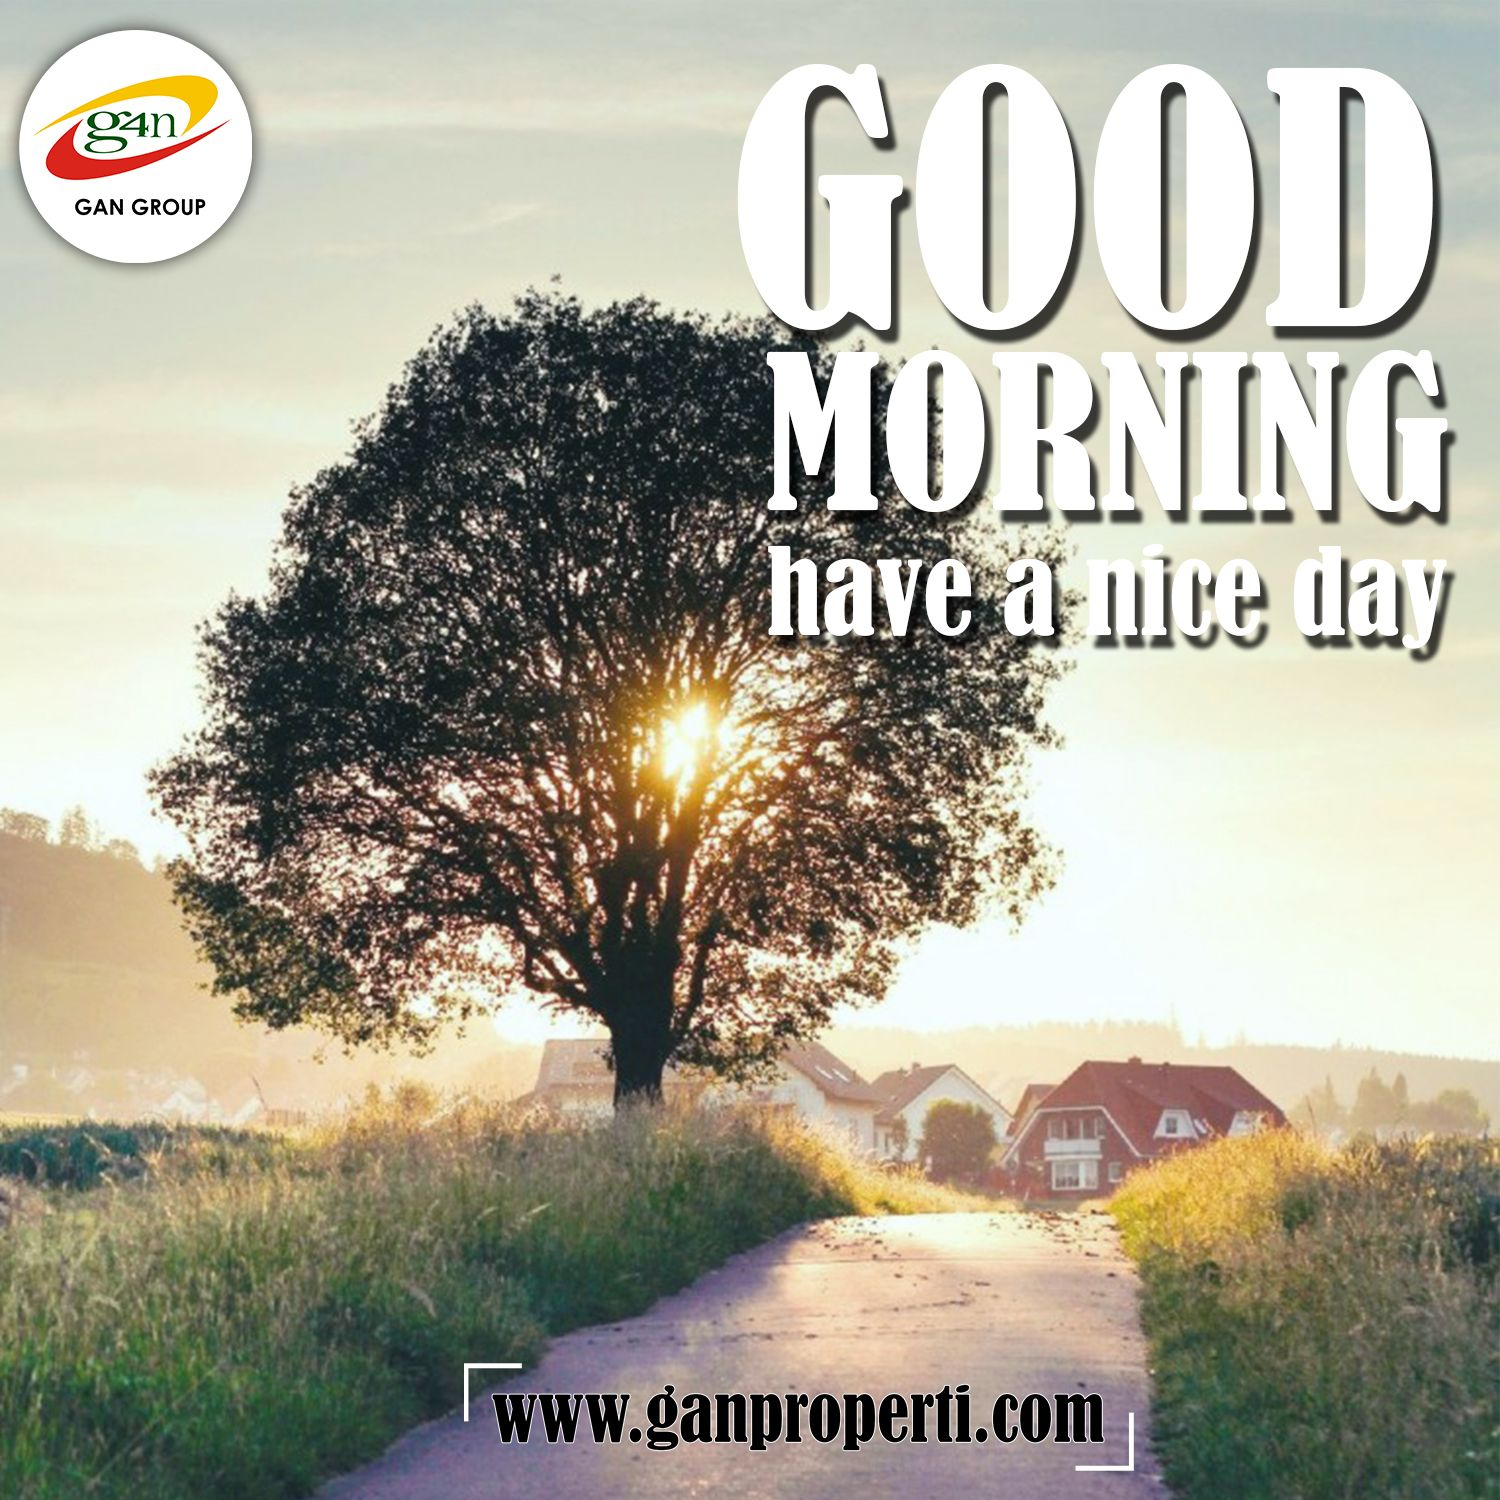 Good Morning! Have a Nice Day!  #house #rumahnyaman #properti #perumahan #property #realestatelife #realestate #rumah #rumahminimalis #rumahku #rumahbandung #perumahanbandung #25lokasi #landed #housing #ganproperti #lokasistrategis #rumahbaru #rumahbaruku #houseoftheday #home #forsale #homestyle #houzz #terbaru